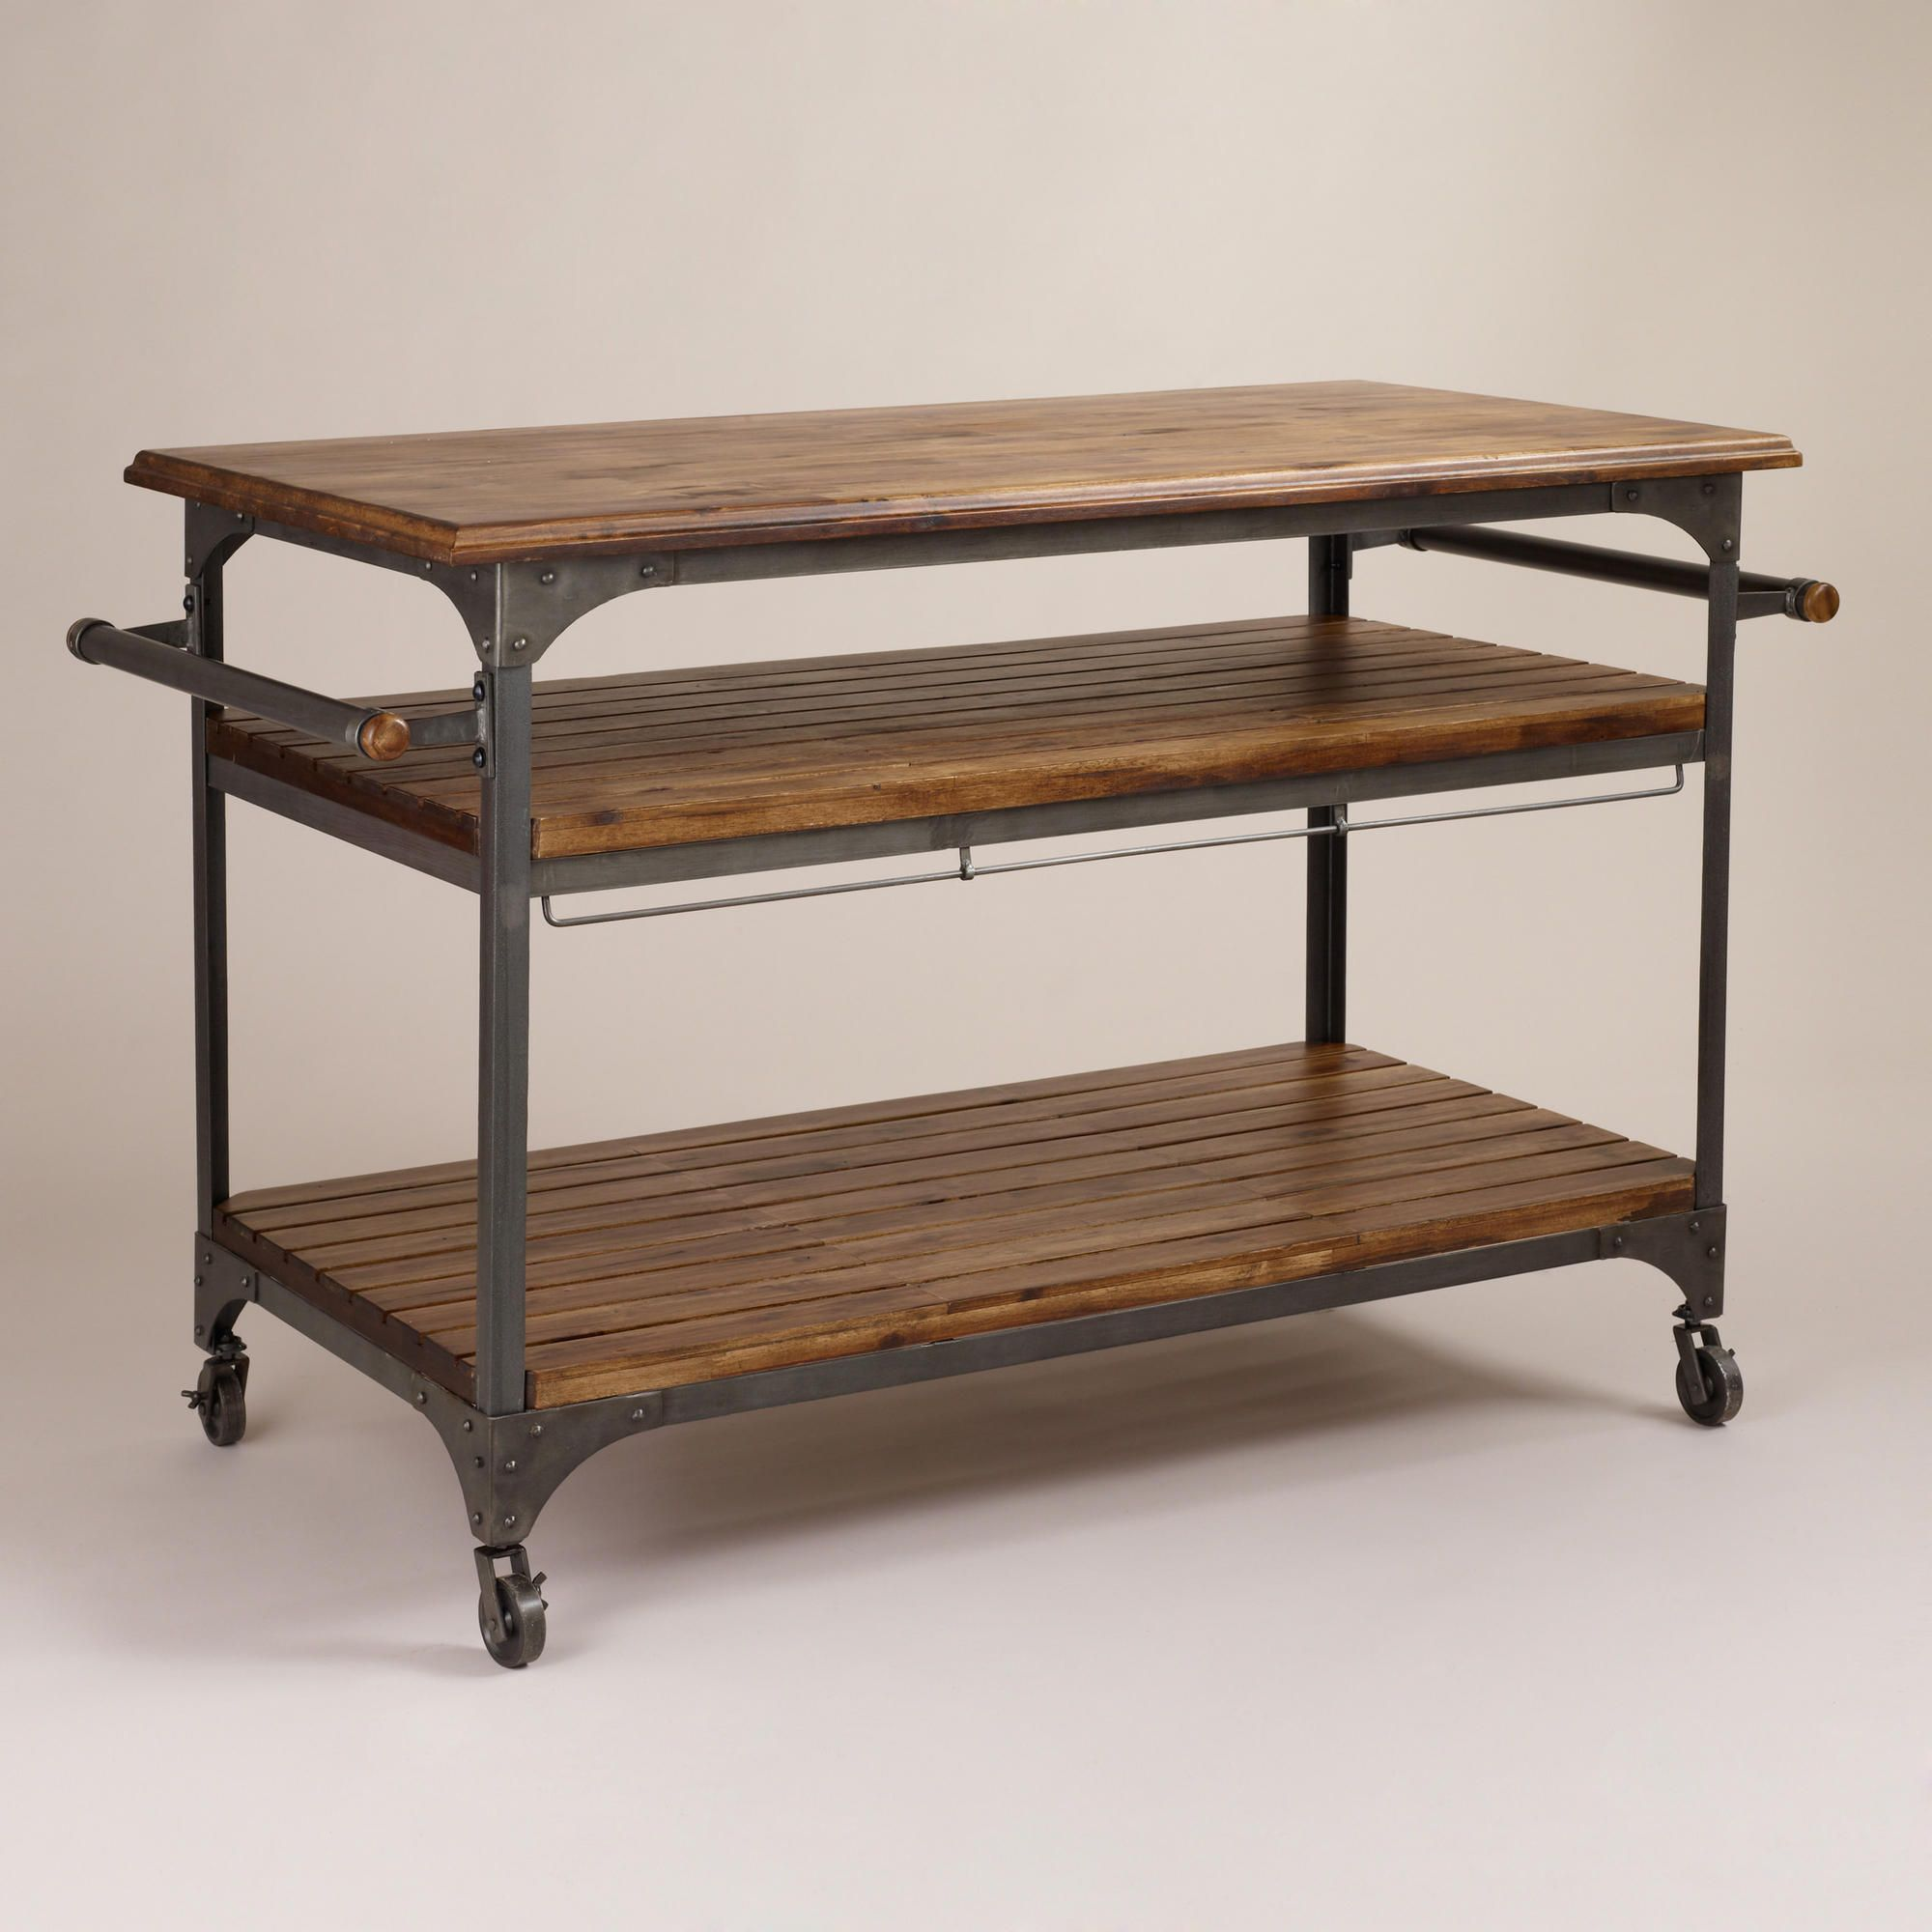 Wood And Metal Jackson Kitchen Cart (World Market); Swap Top For Larger One  To Create Breakfast Counter.